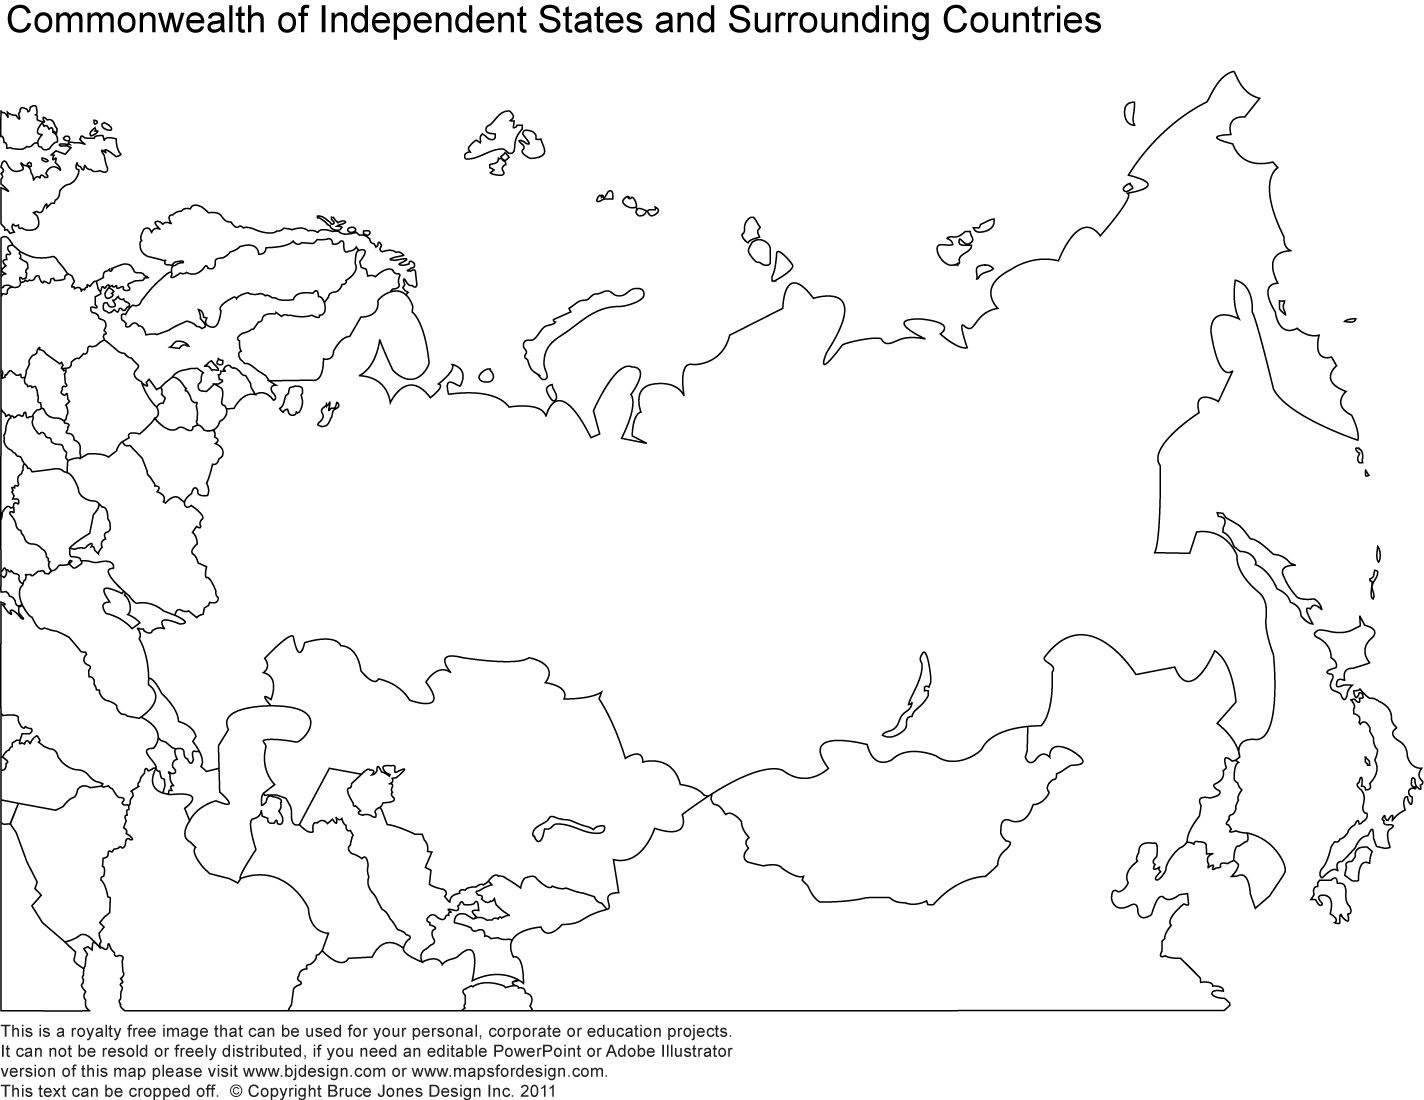 Russia, Asia, Central Asia Printable Blank Maps, Royalty Free | Maps - Free Printable Map Of Russia